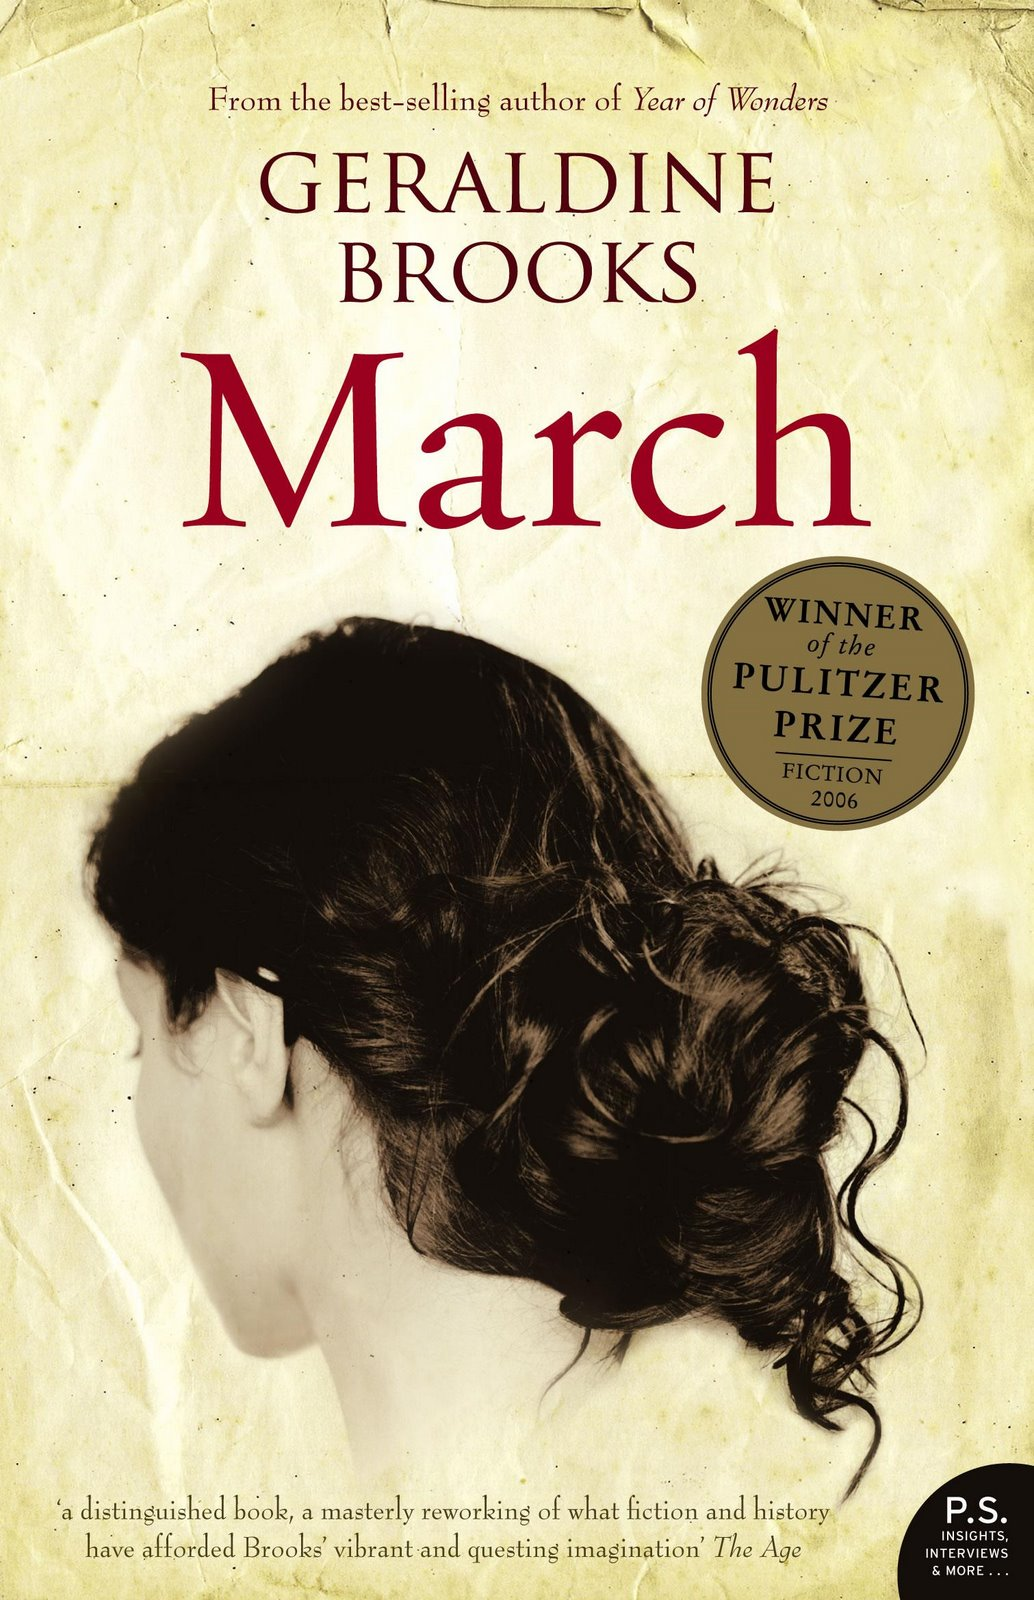 March, by author Geraldine Brooks